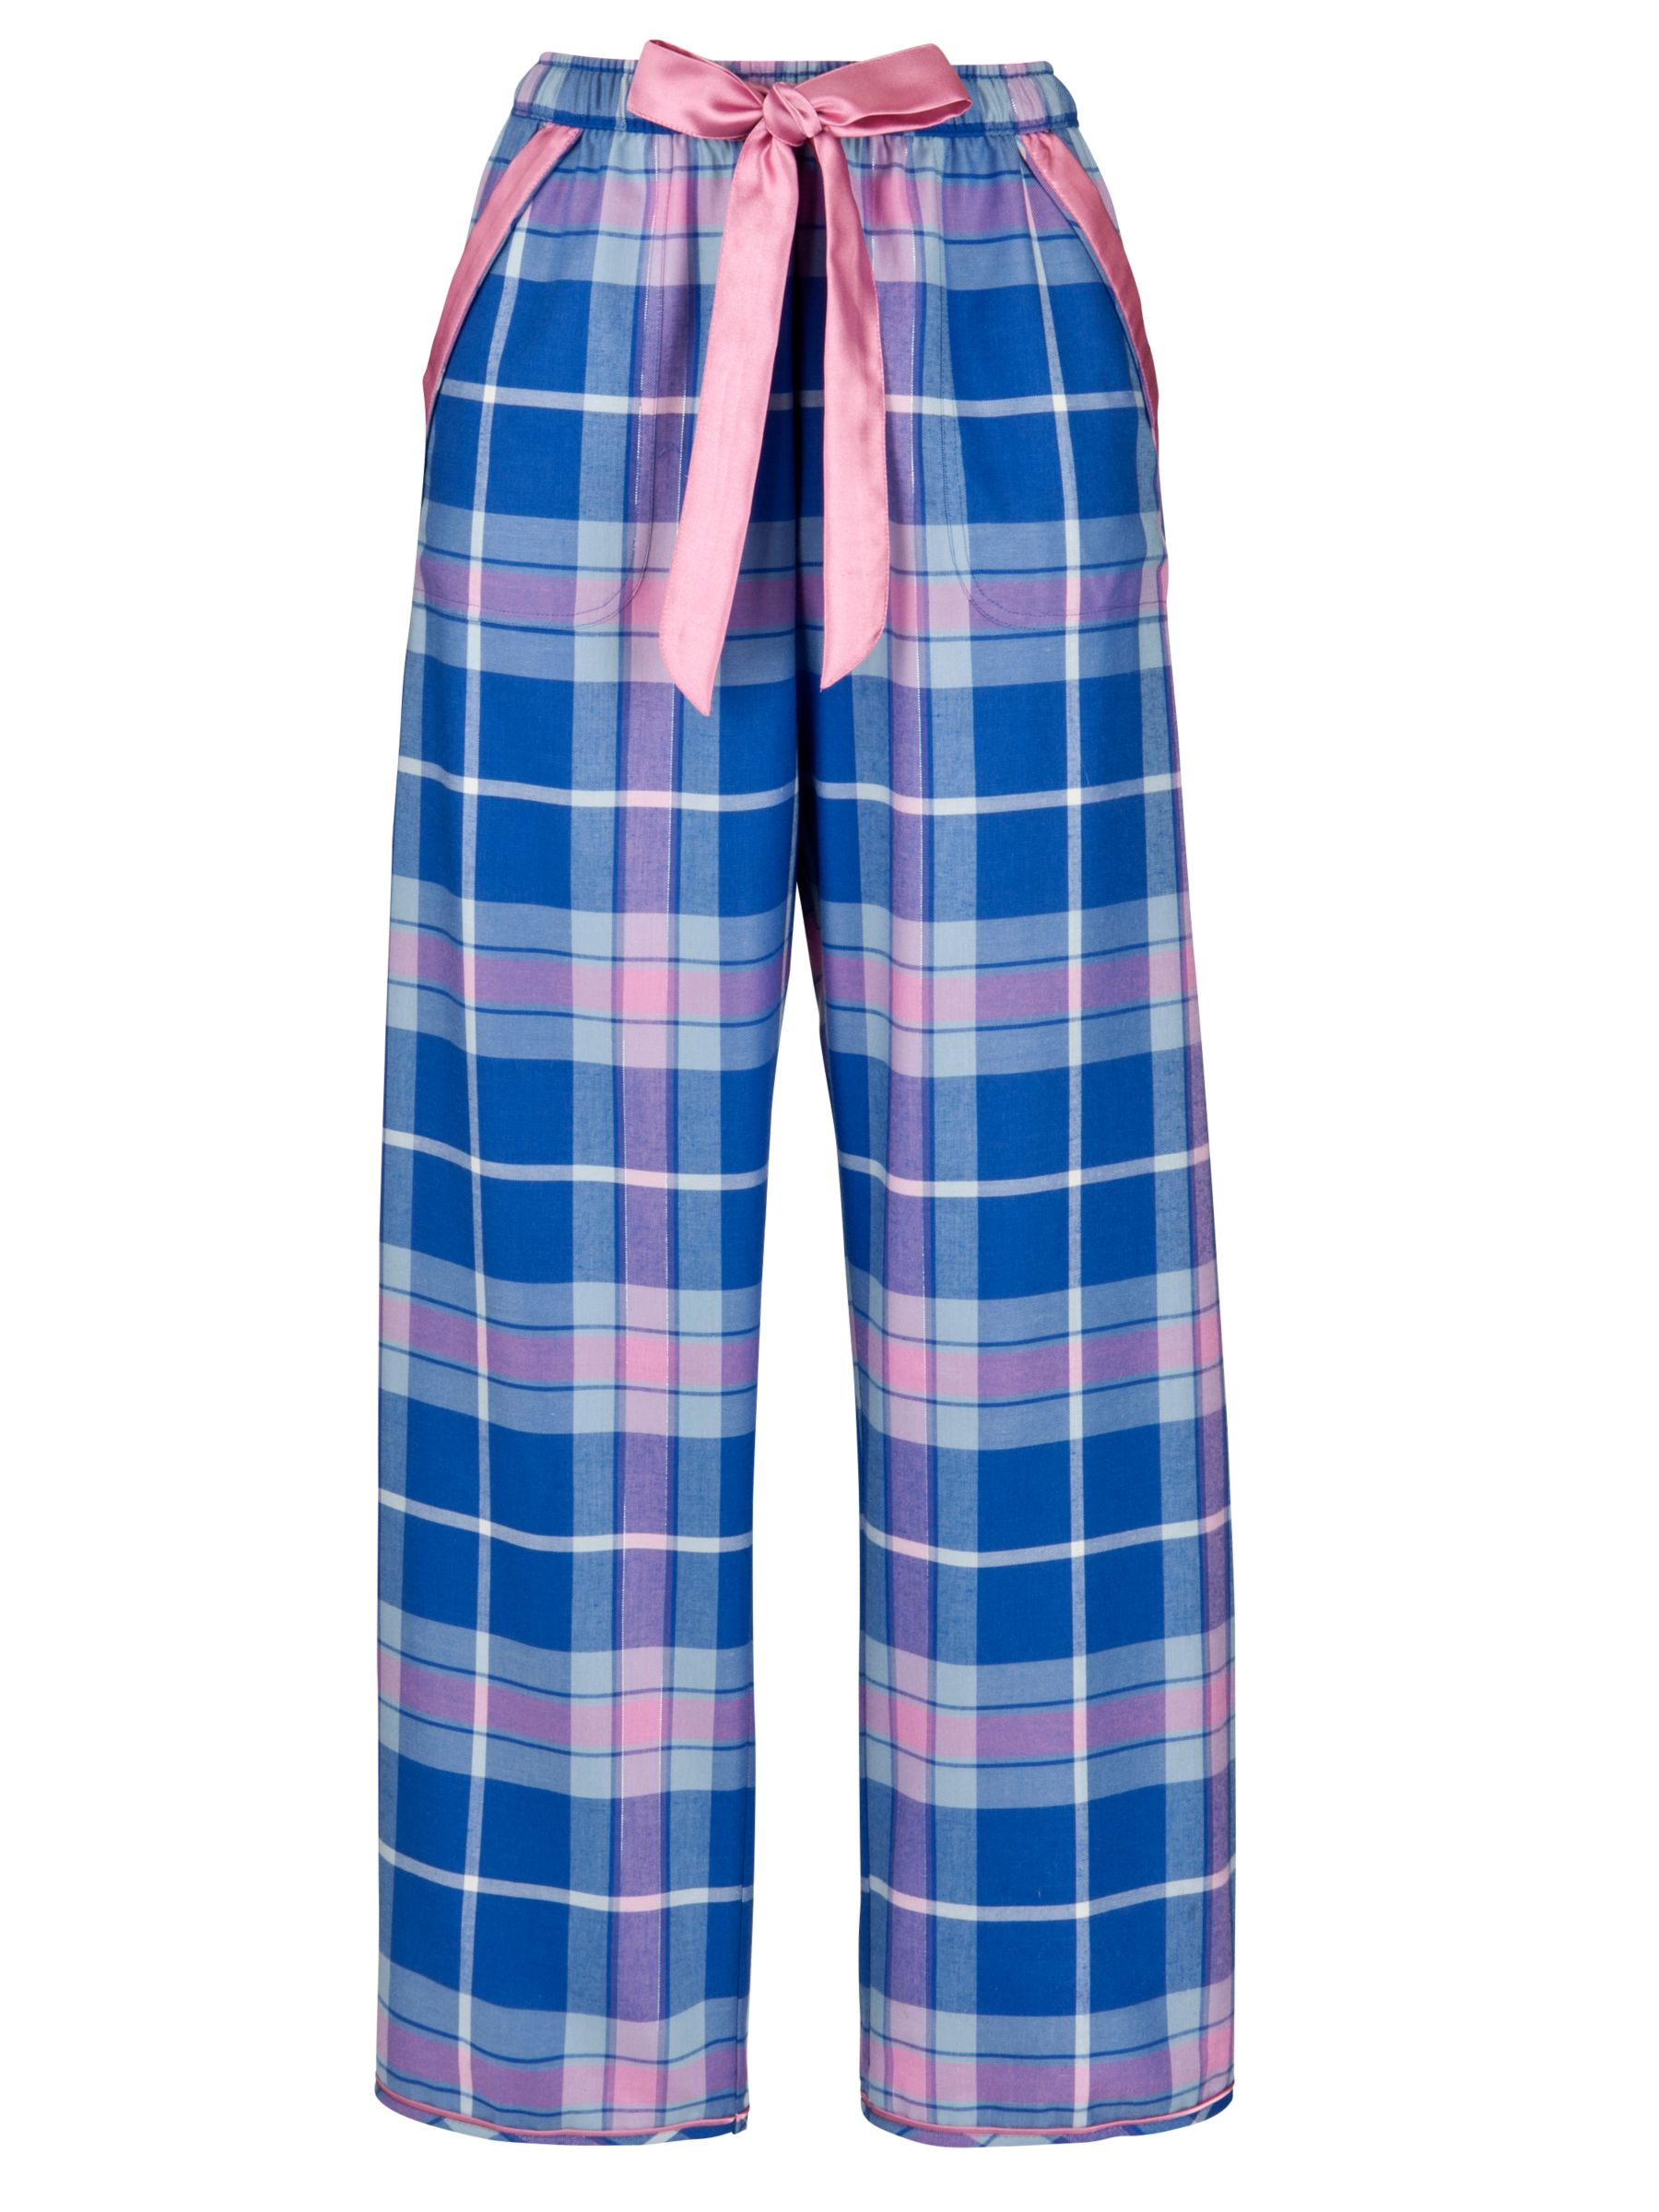 Cyberjammies Cornflower Checked Pyjama Bottoms, Blue